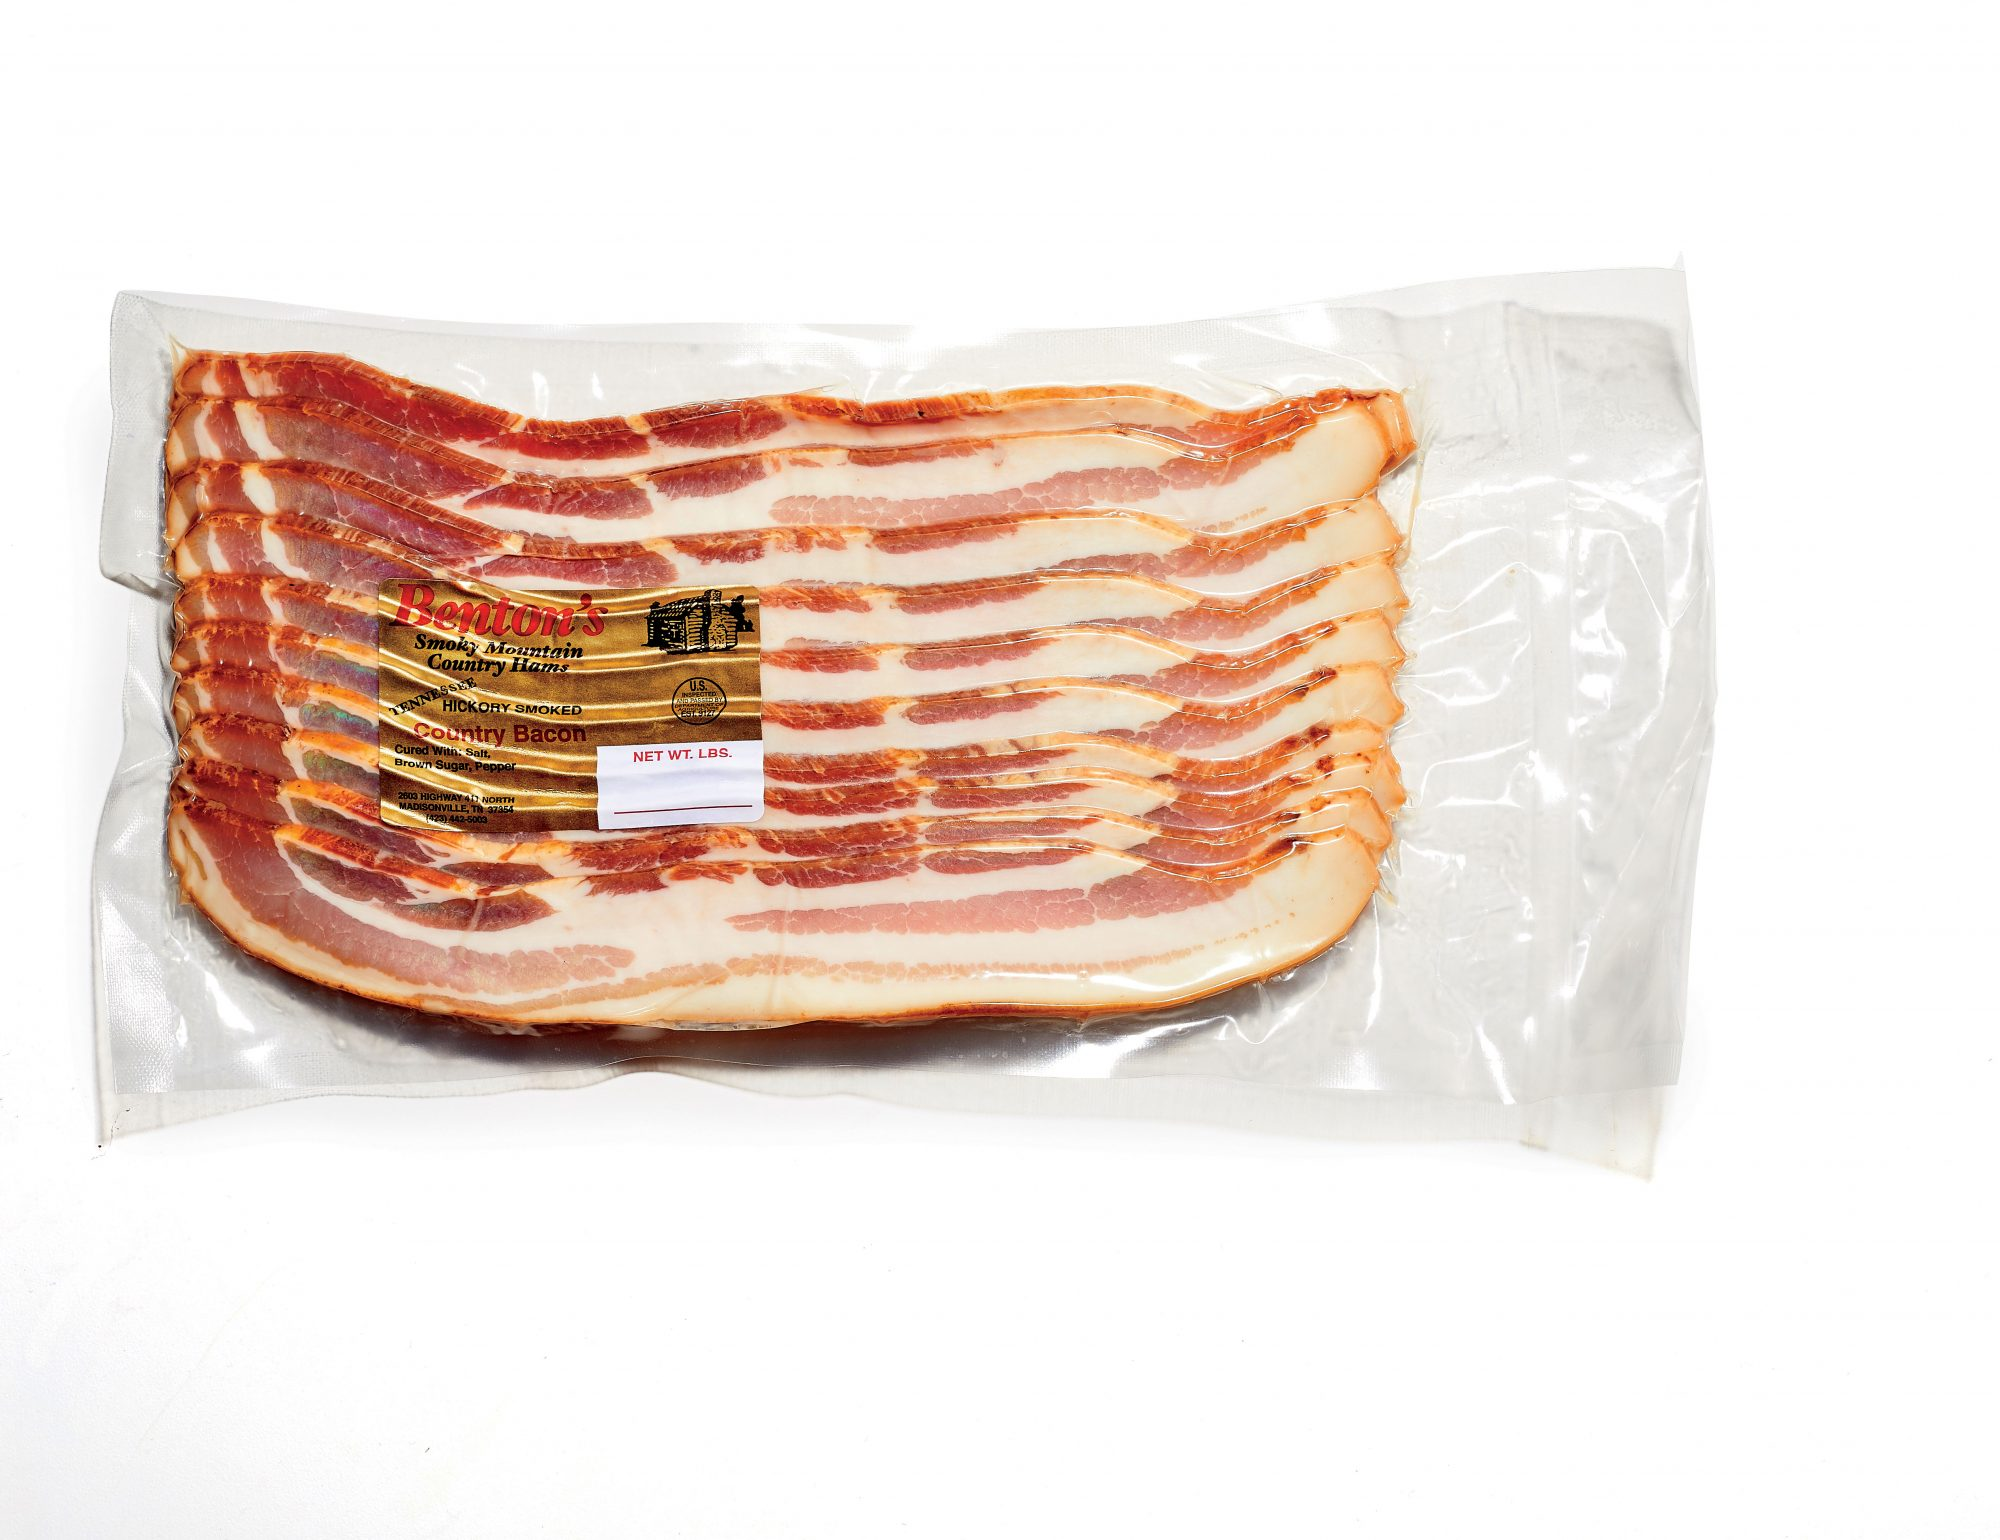 Benton's Hickory Smoked Country Bacon